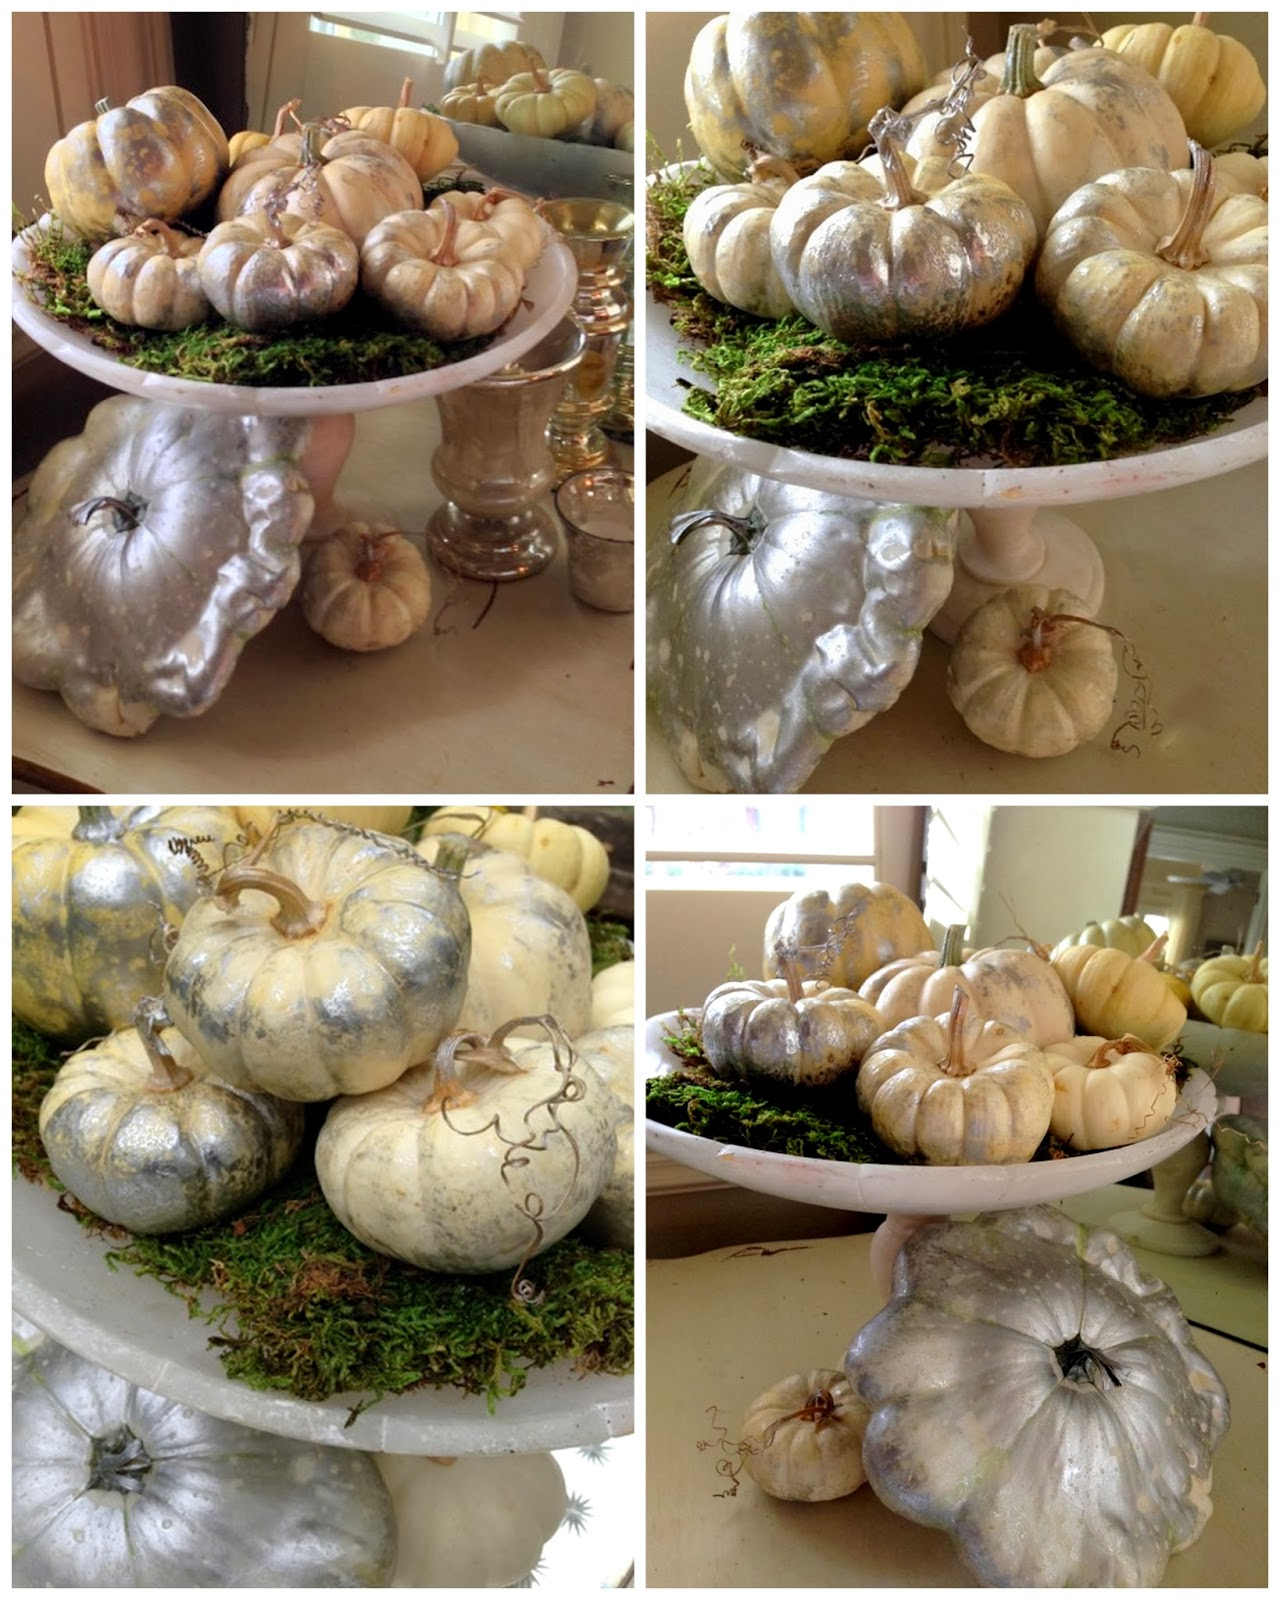 Marblize Pumpkins for the Holidays